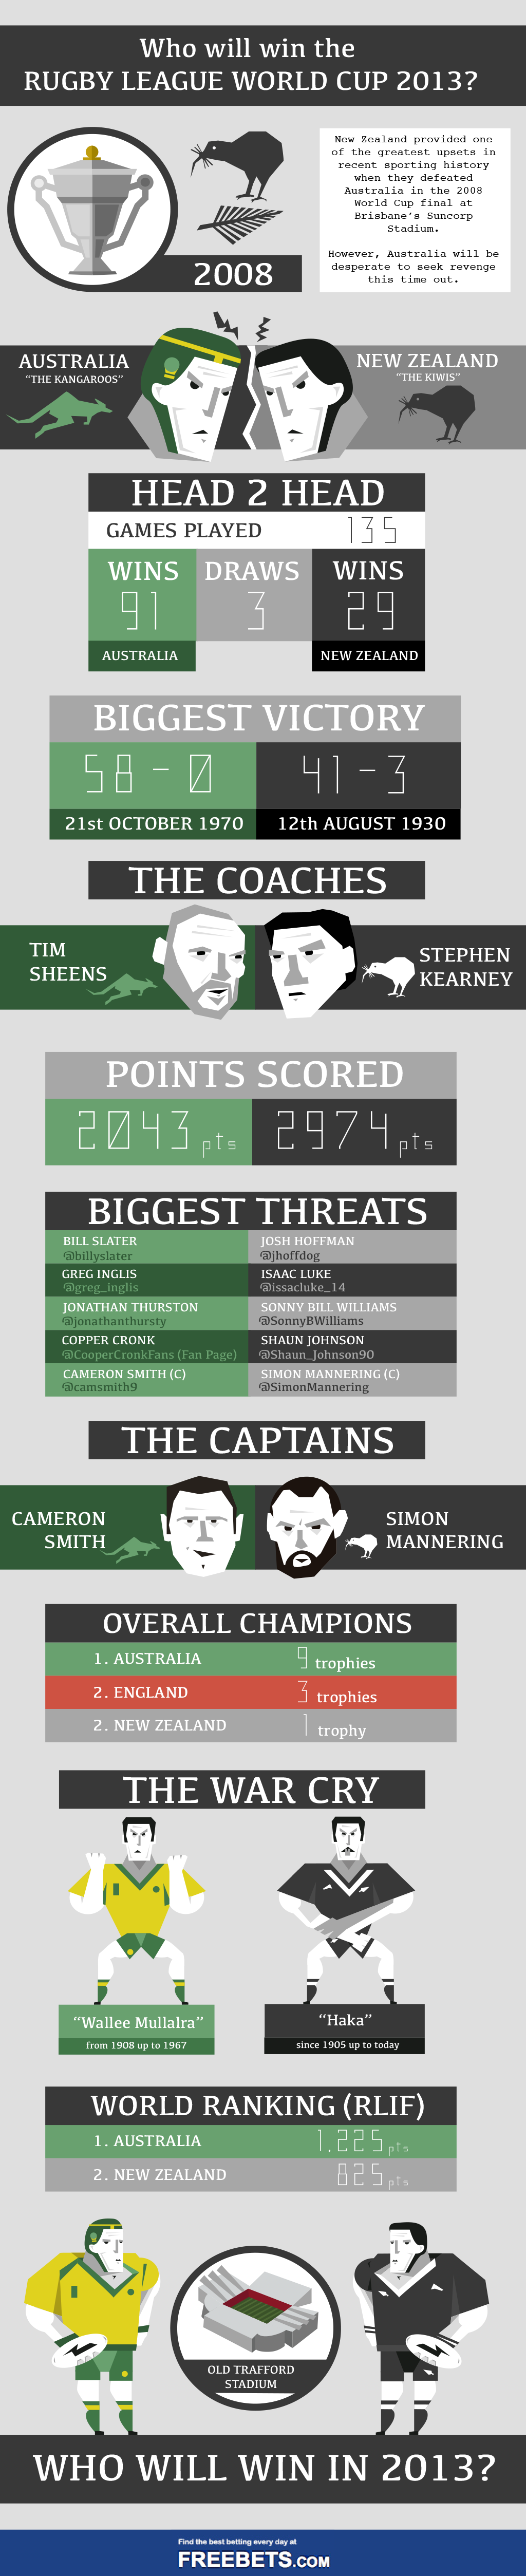 rugby league-infographic